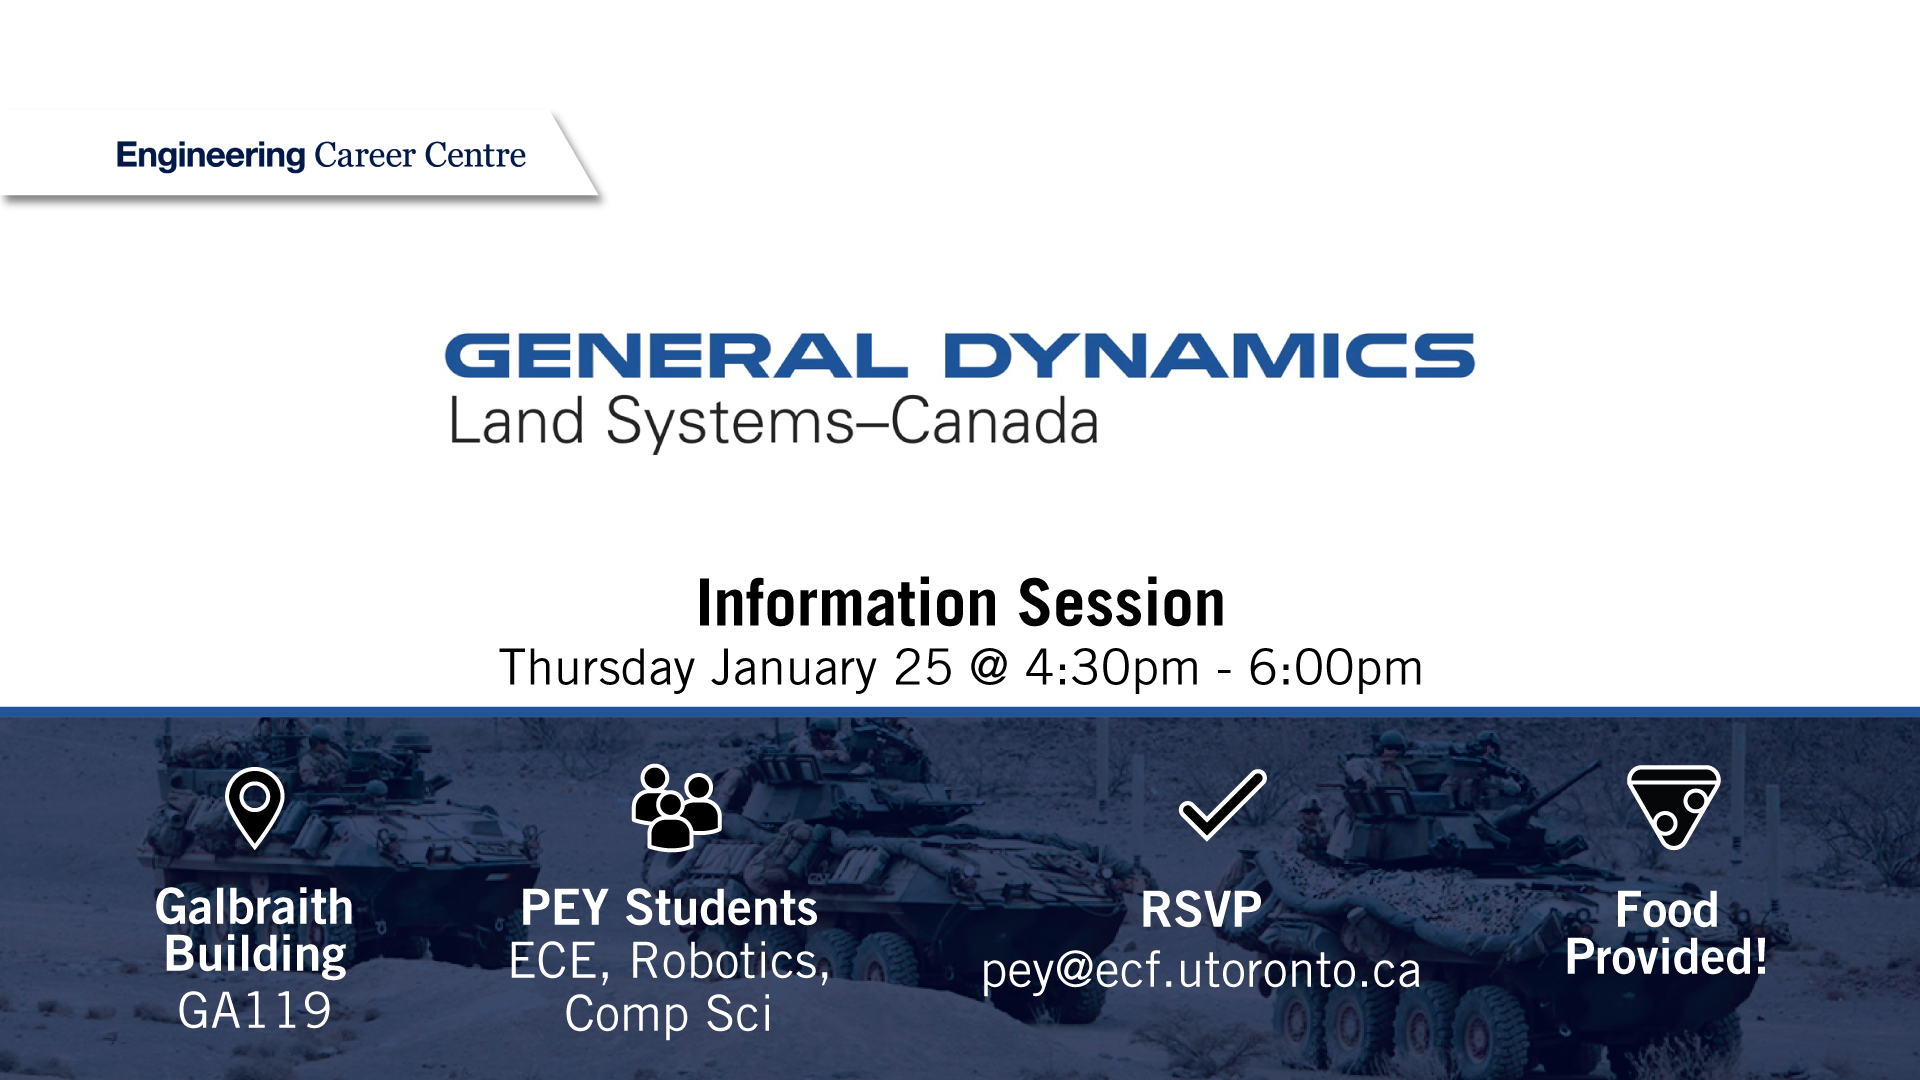 General Dynamics Land Systems - Engineering Career Centre